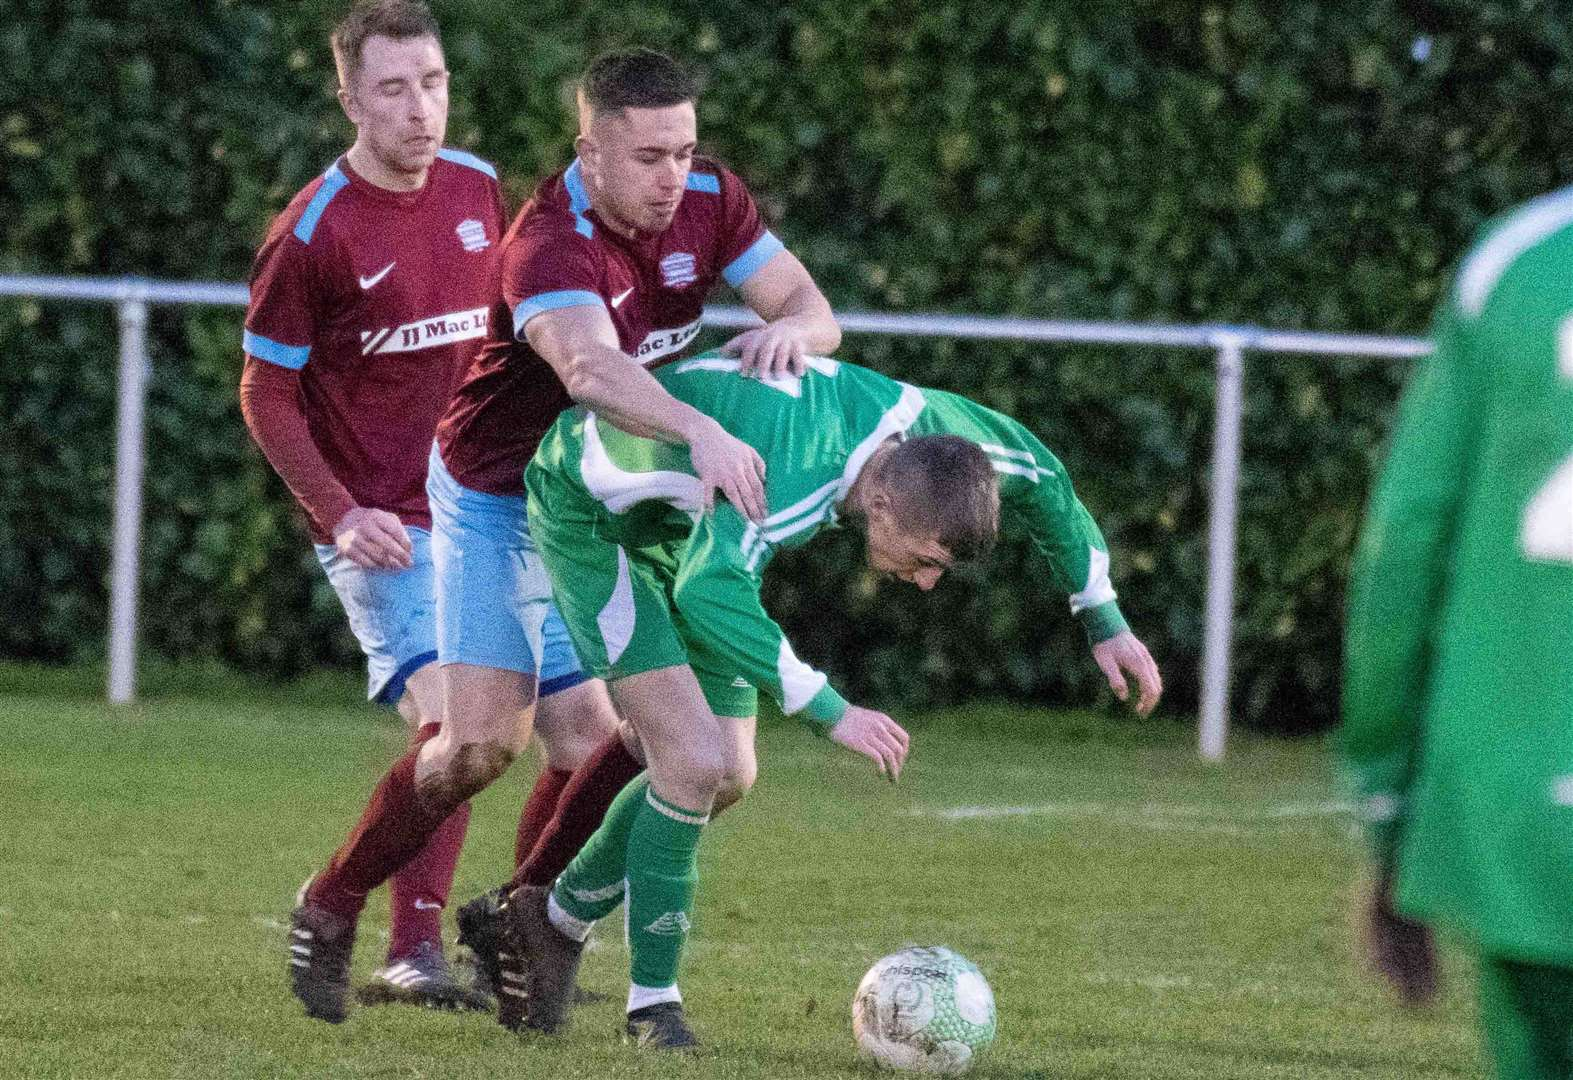 FOOTBALL: Wakes waste chances in 'horrible' defeat